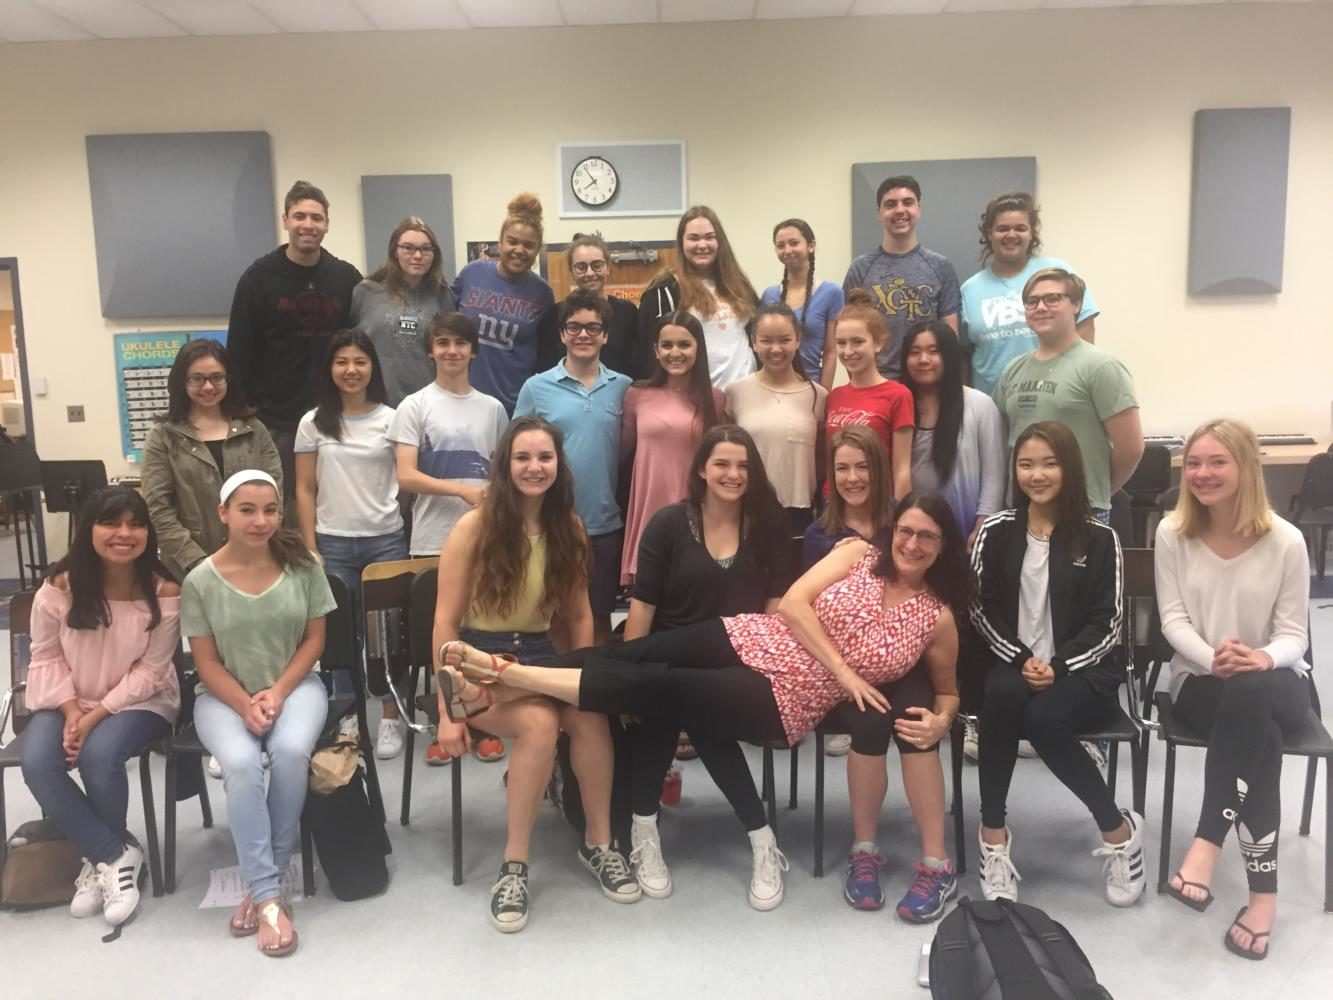 SING%21+Choir+teacher+Leslie+MacPherson+poses+with+her+class.+She+will+retire+at+the+end+of+this+year.